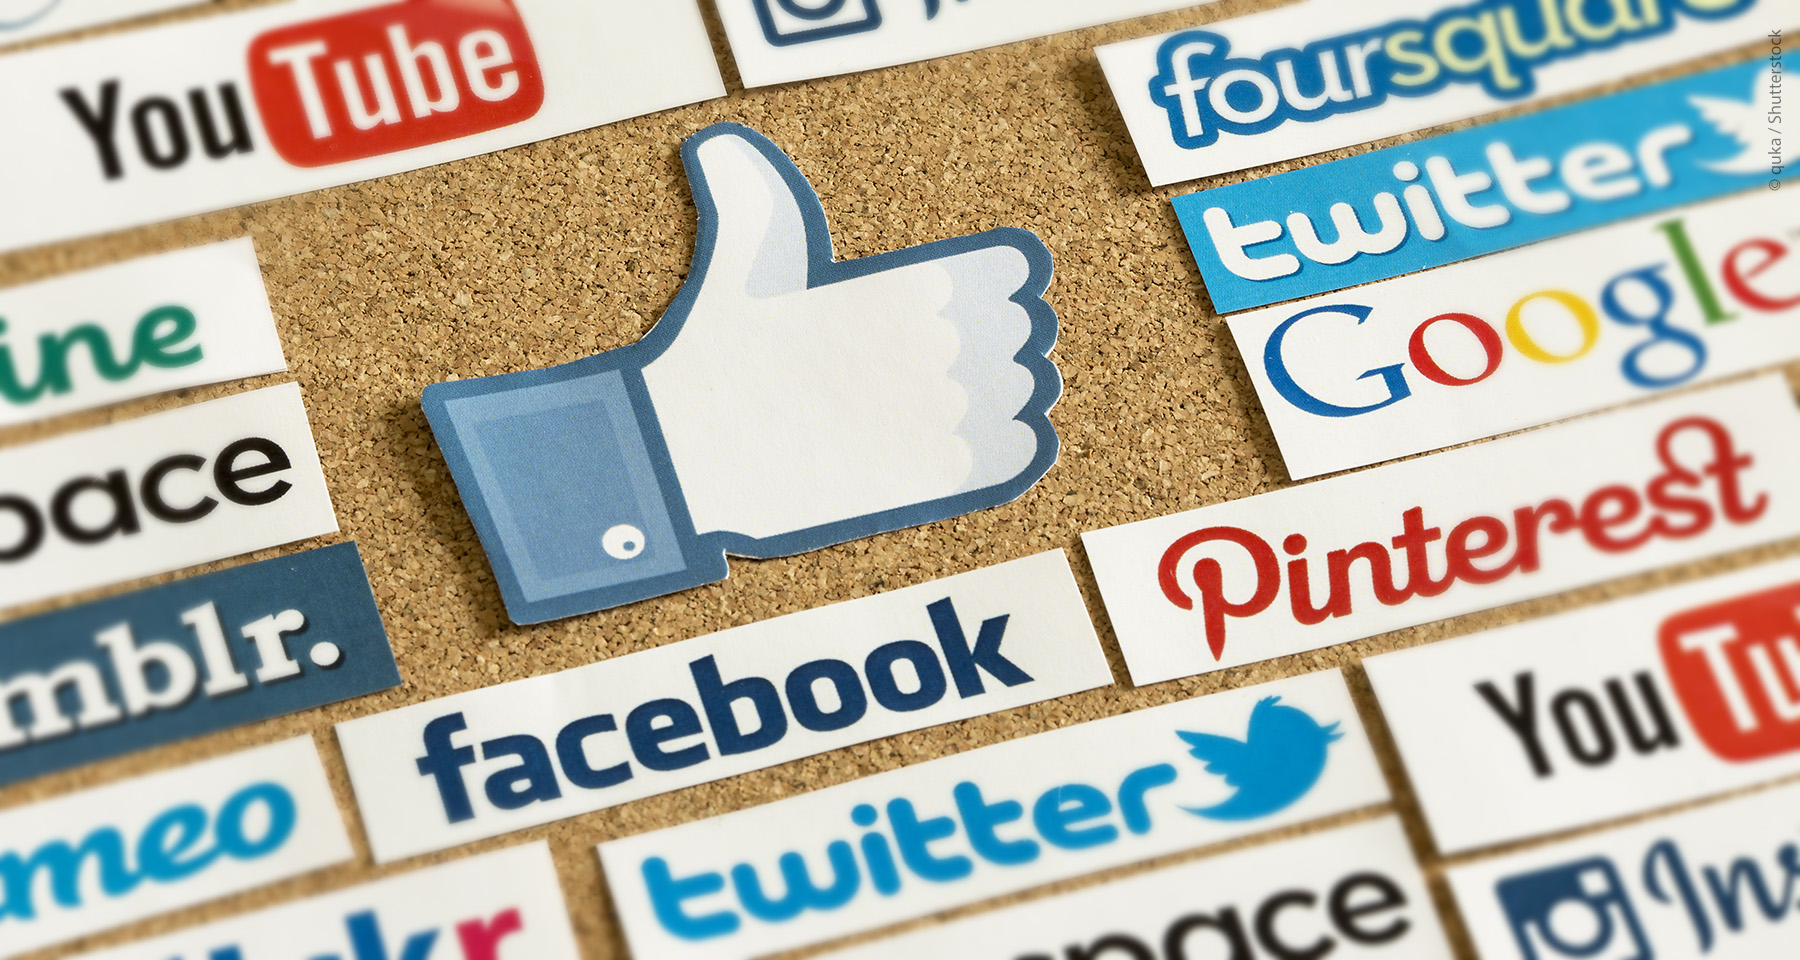 Facebook, YouTube are world's most popular social networks